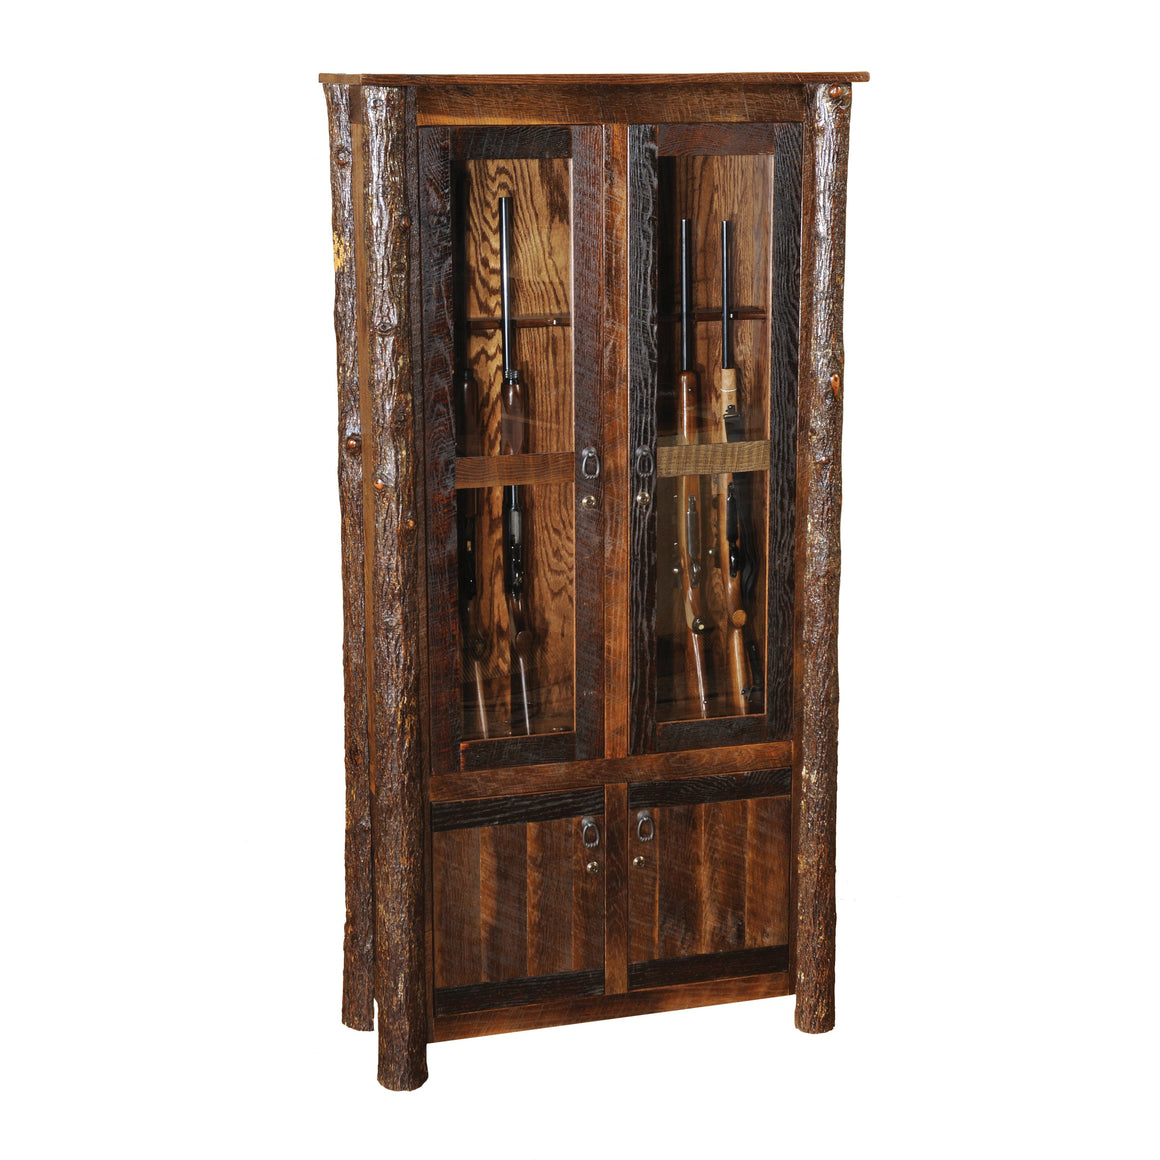 Barnwood Eight Gun Cabinet - Reclaimed Antique Oak Tobacco Barn Wood - Rustic Deco Incorporated